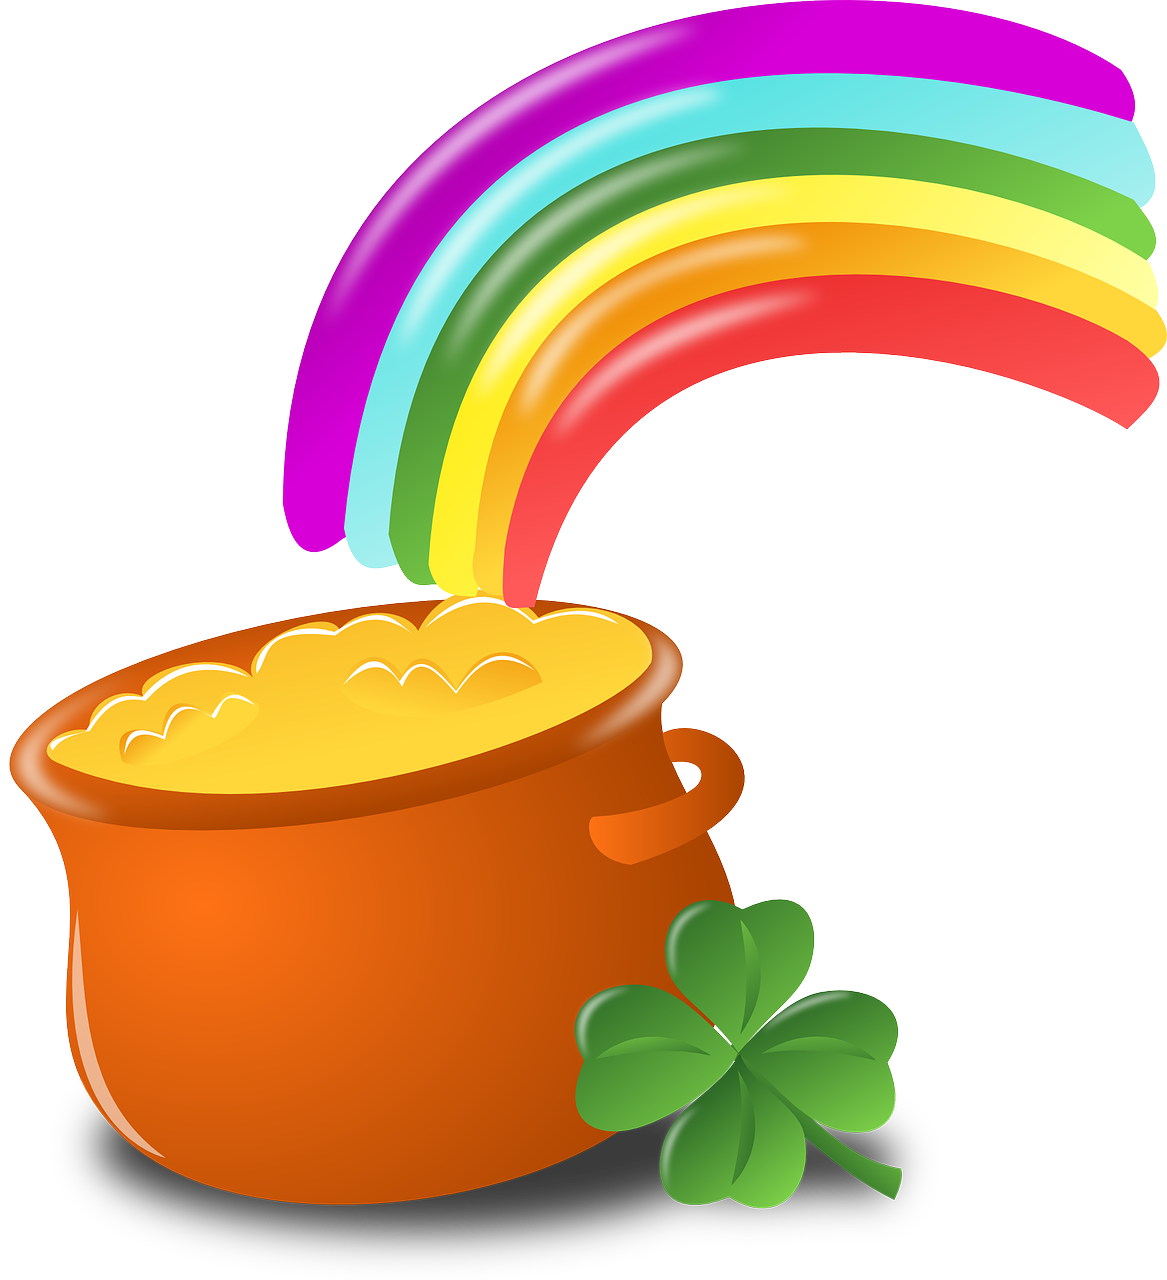 A crock at the end of the rainbow